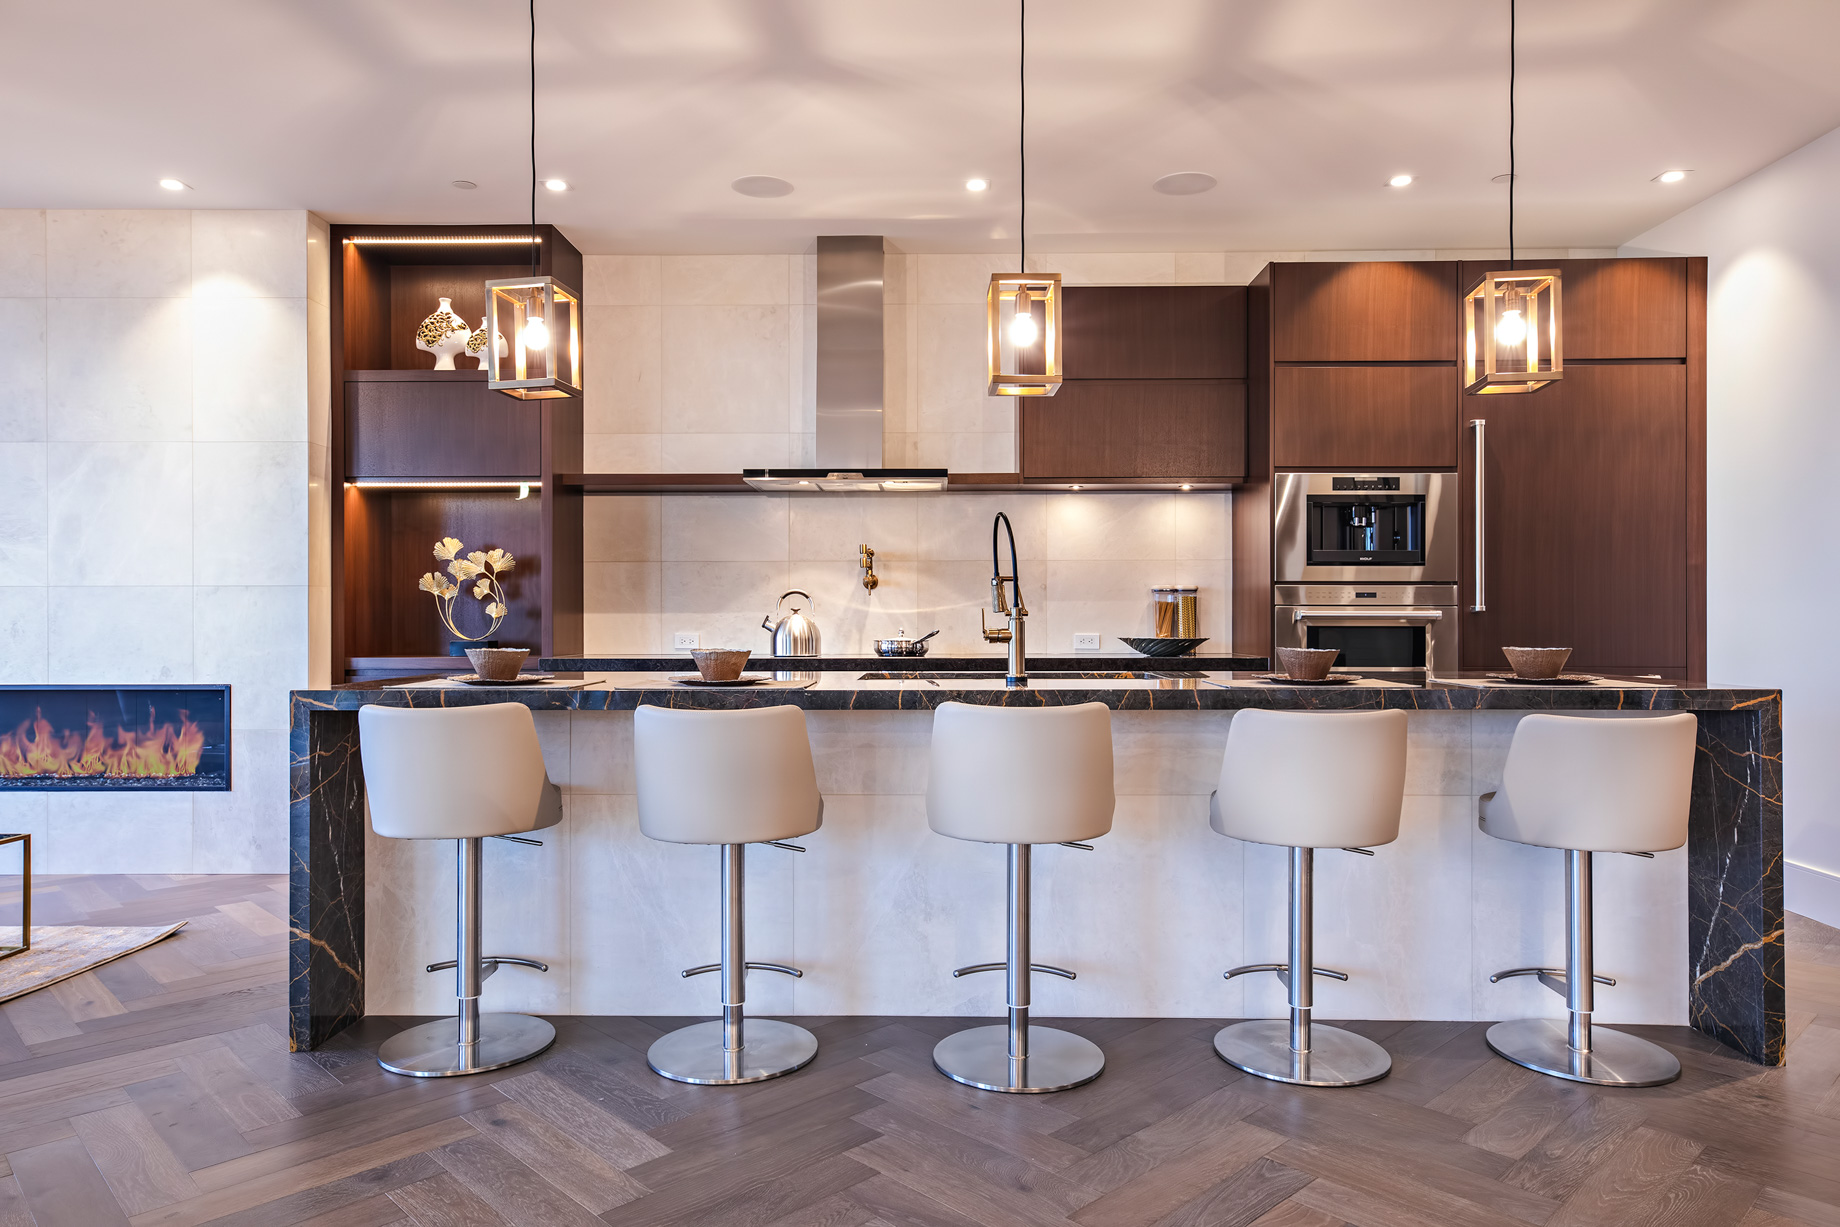 2111 Union Court, West Vancouver, BC, Canada - Kitchen - Luxury Real Estate - West Coast Modern Home